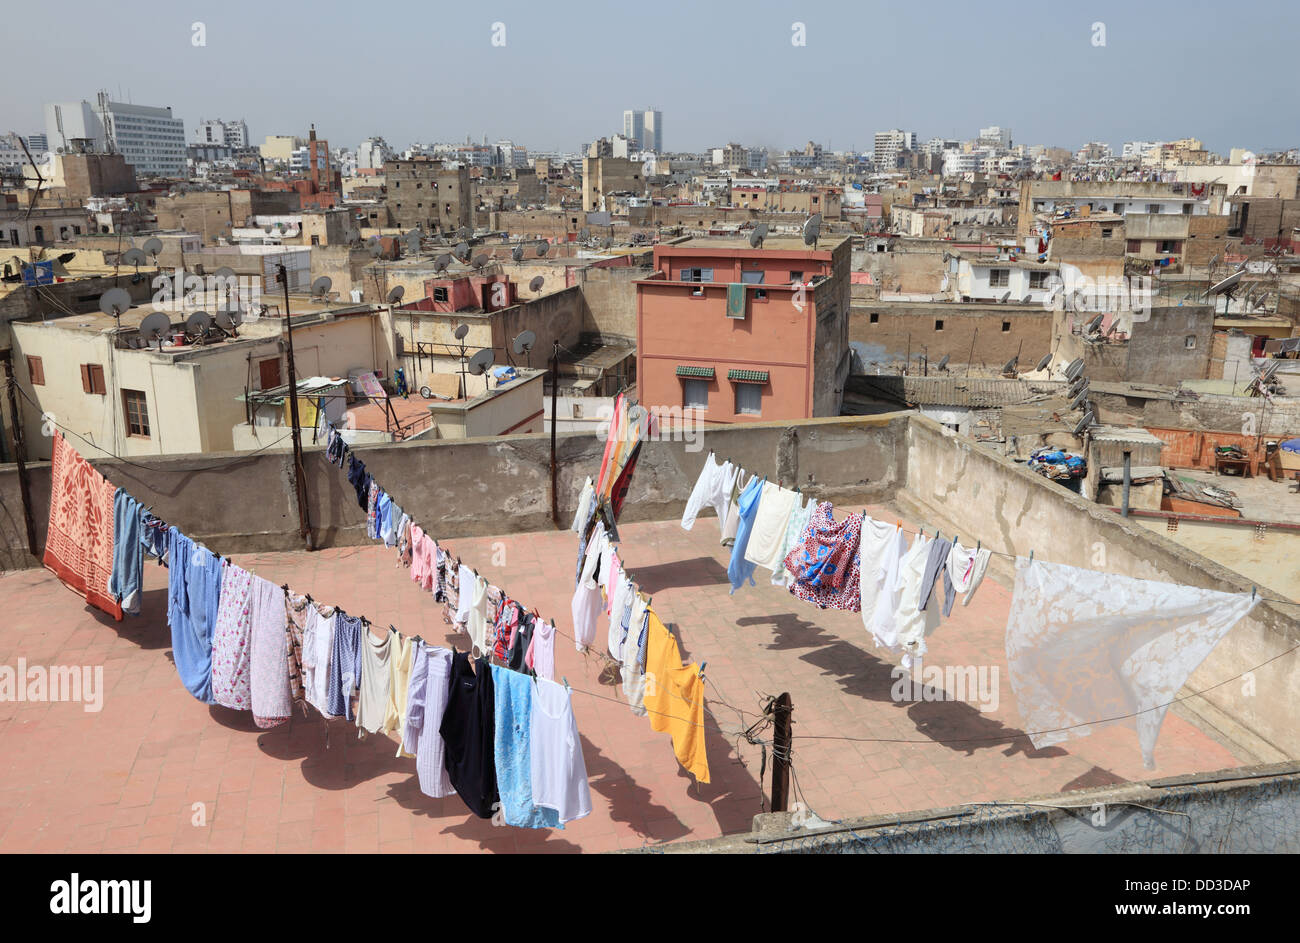 View over the rooftops of medina in Casablanca, Morocco - Stock Image